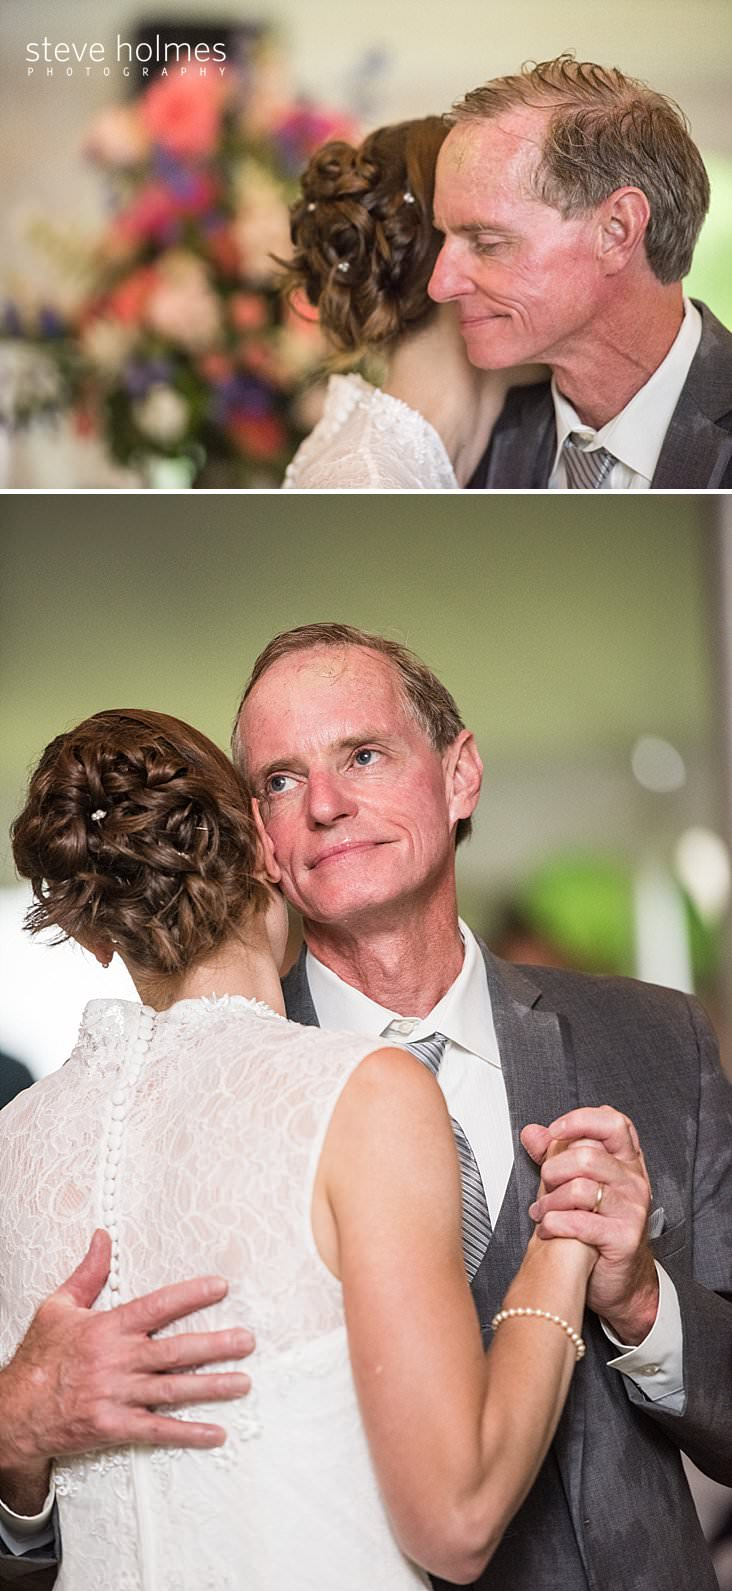 49_Close up of father dancing with bride during wedding reception.jpg